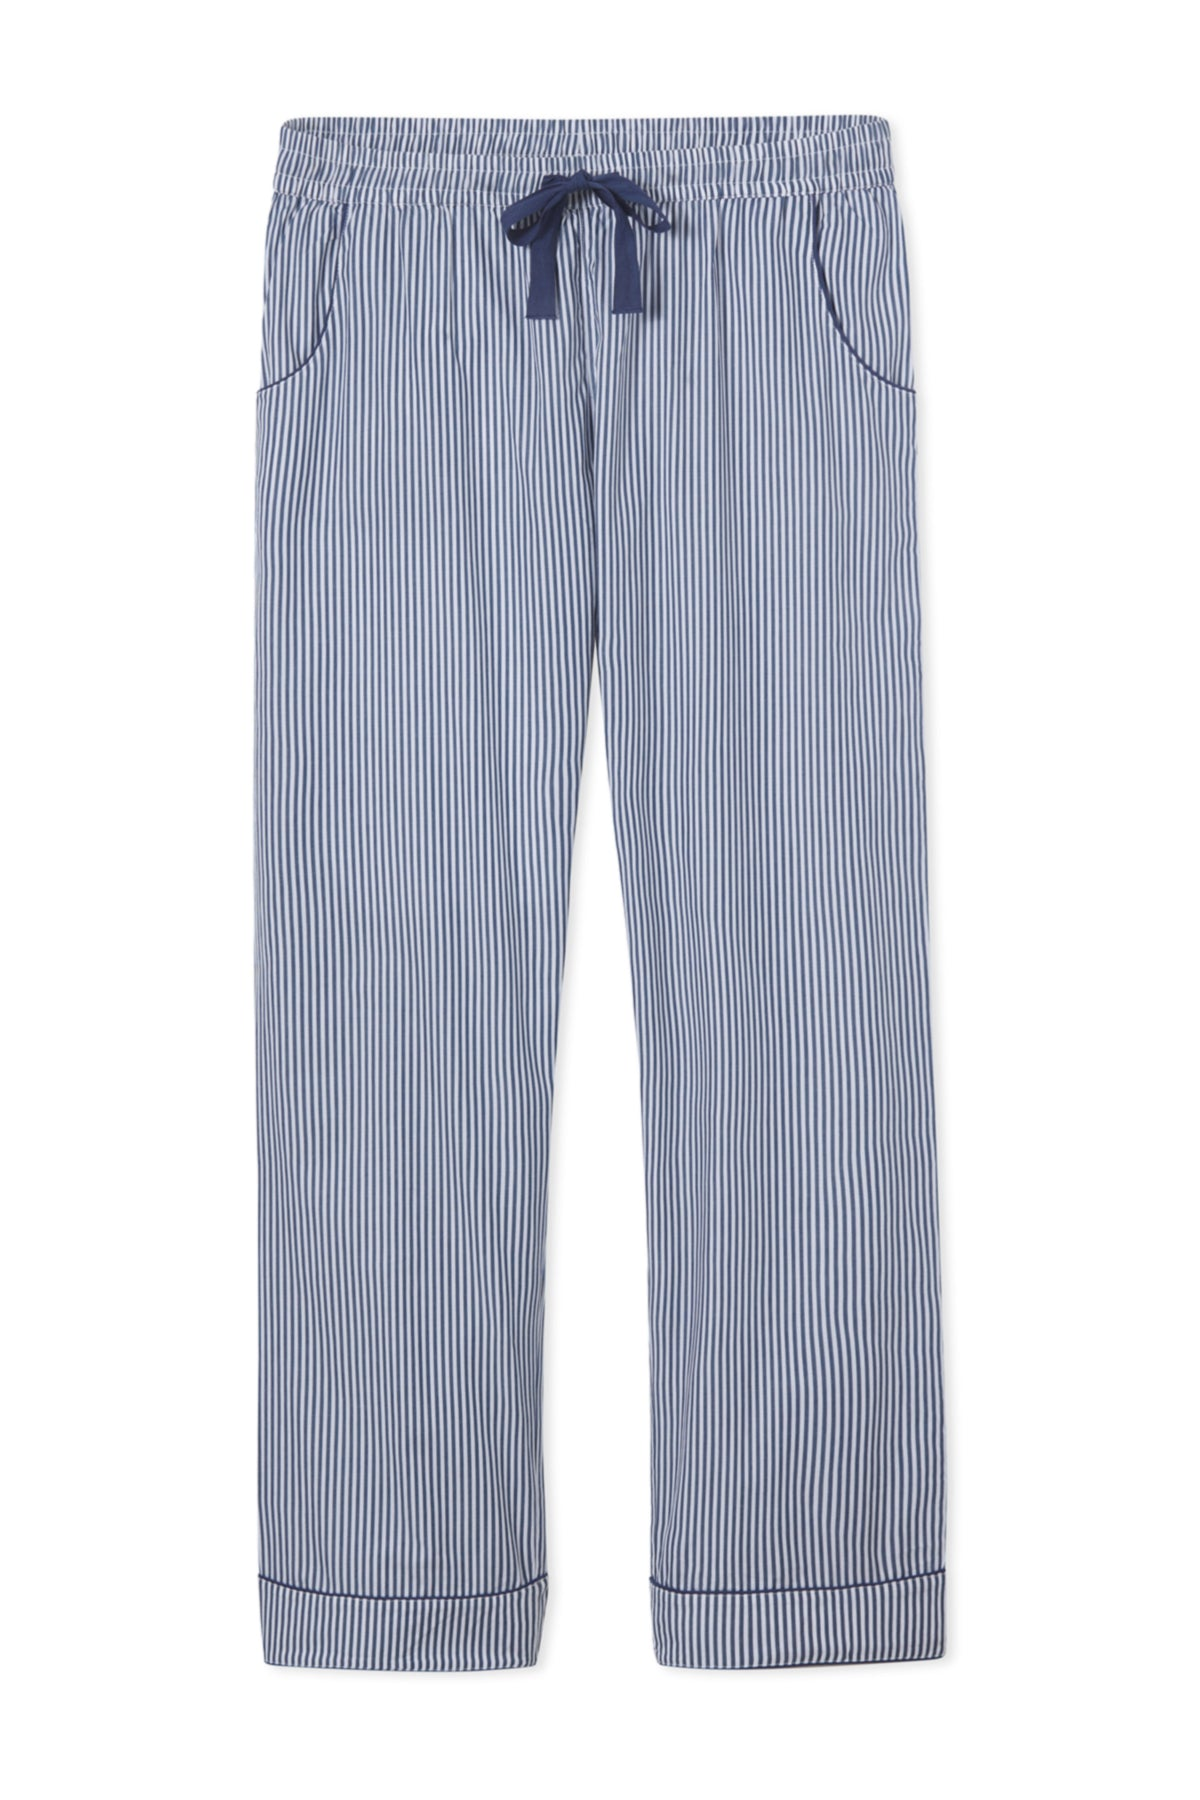 Men's Poplin Pajama Pants in Navy Stripe